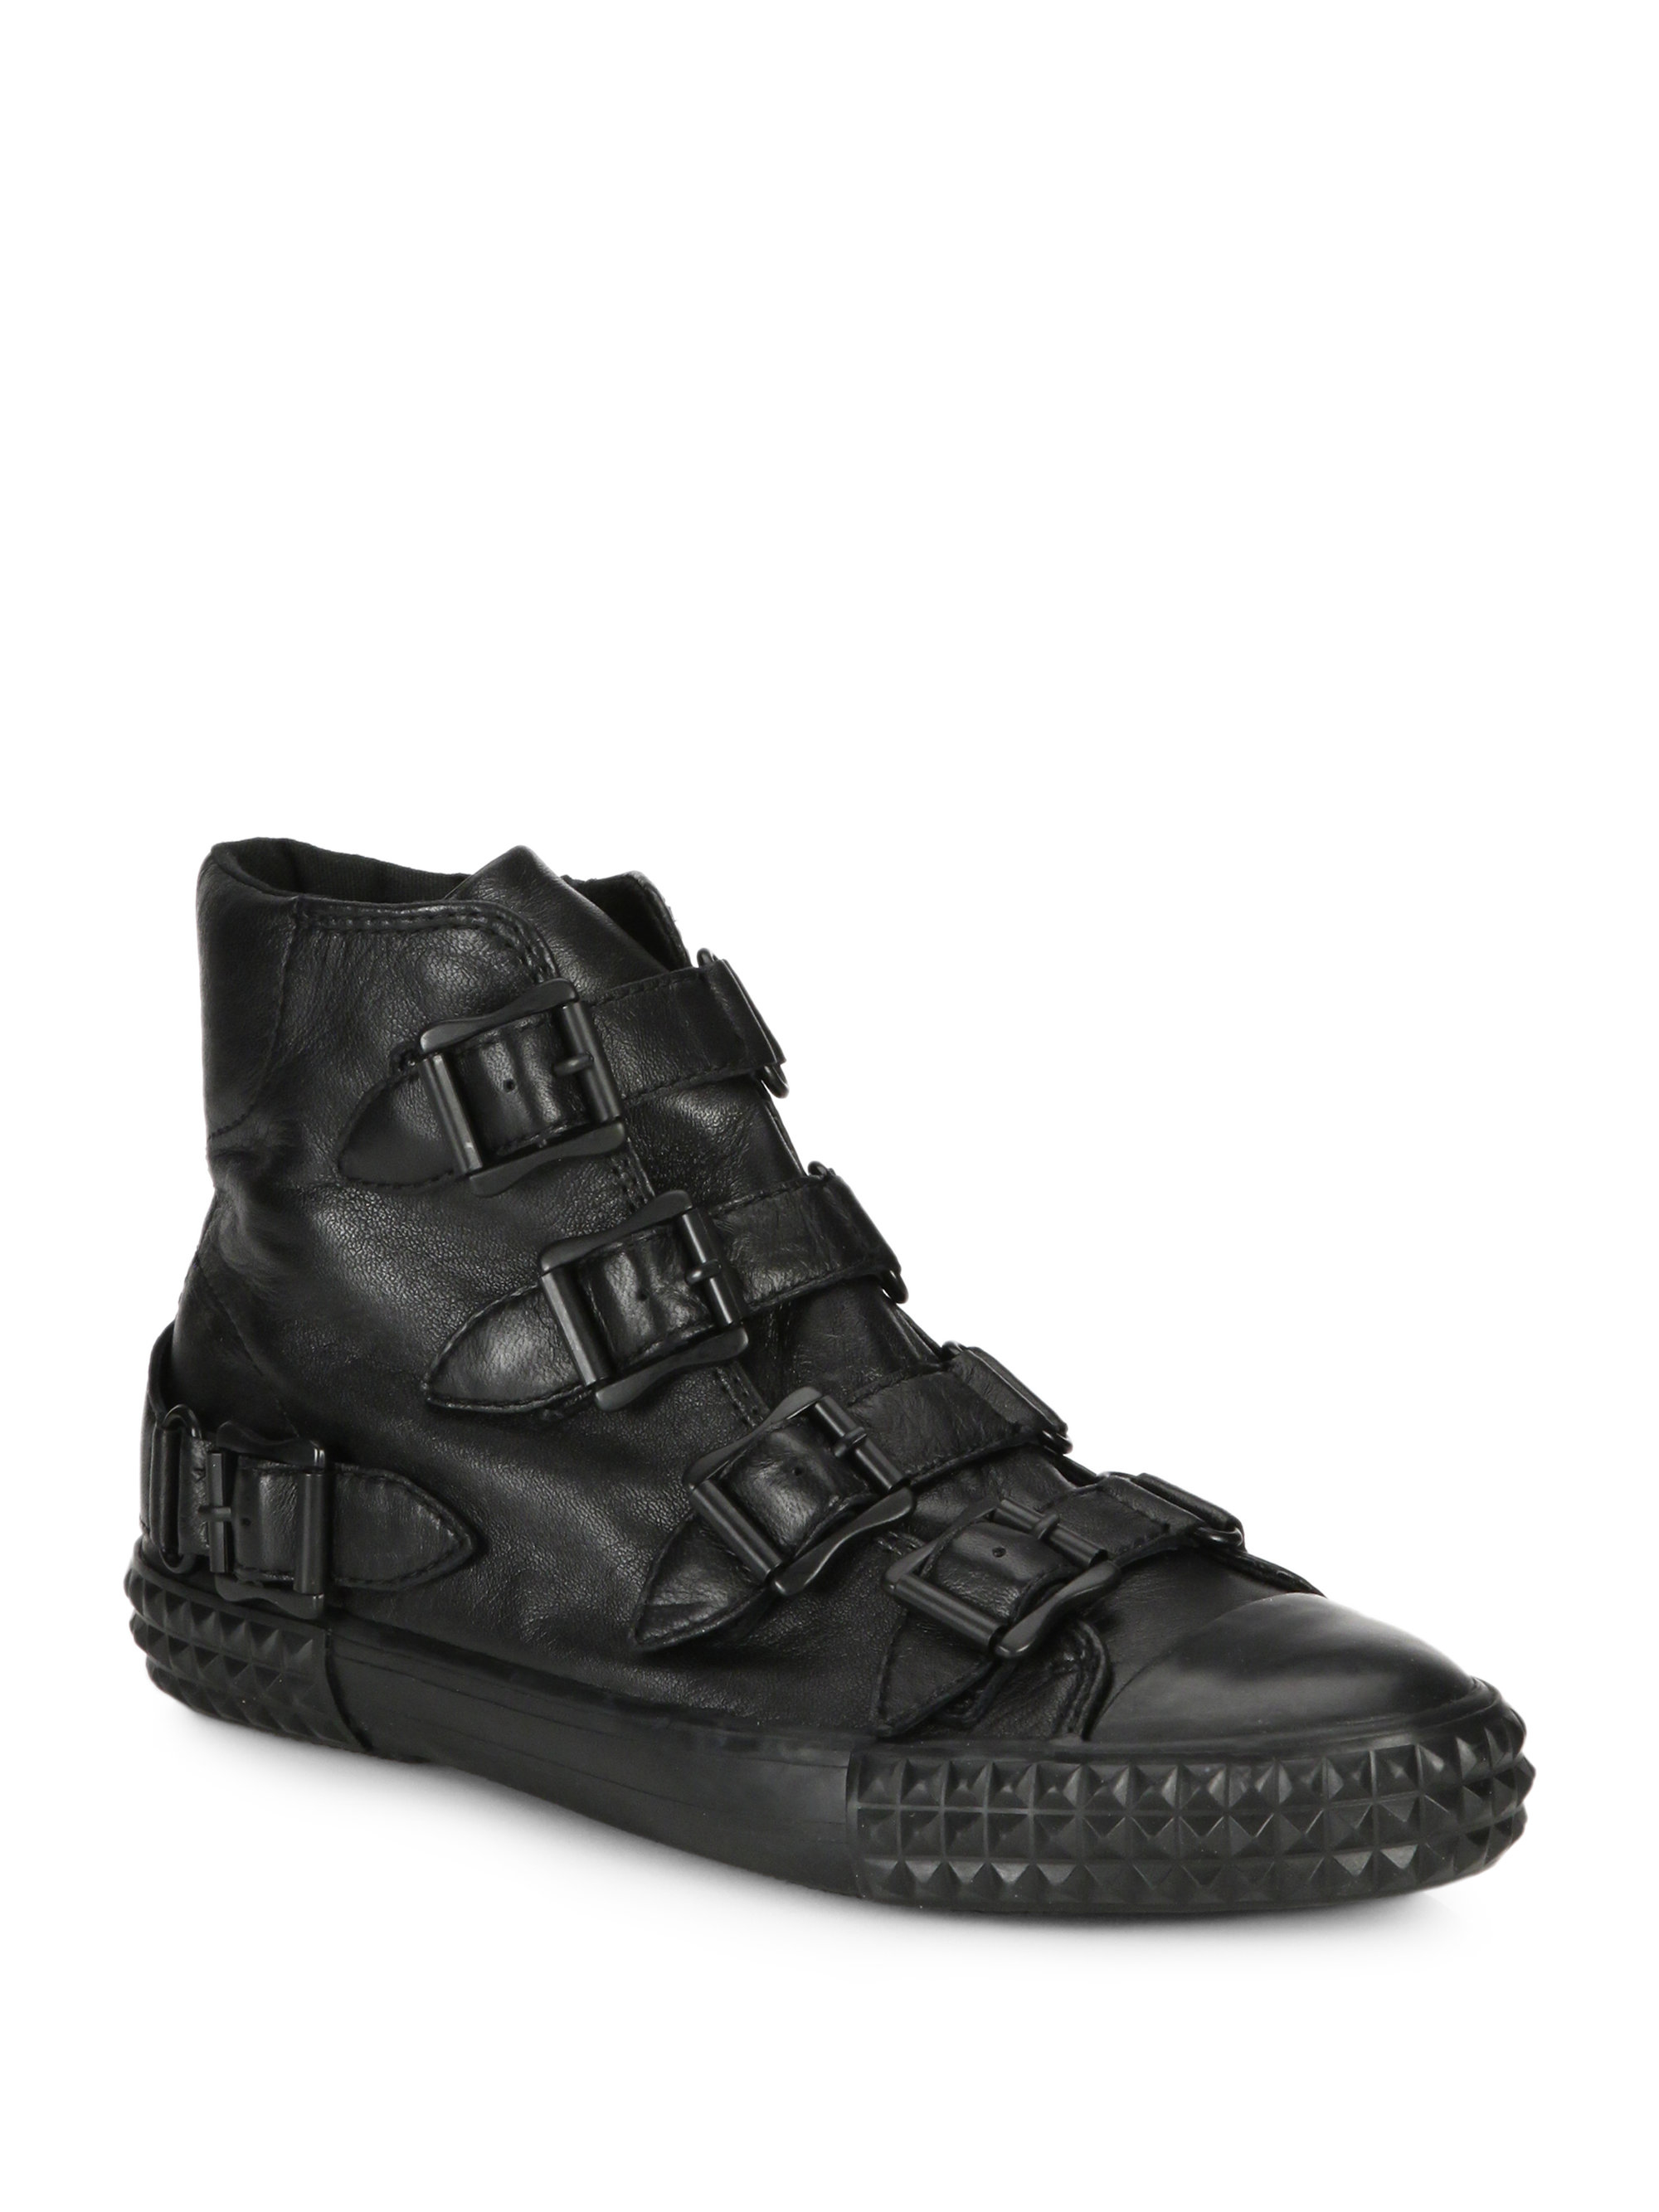 ash wonder buckled high top leather sneakers in black lyst. Black Bedroom Furniture Sets. Home Design Ideas